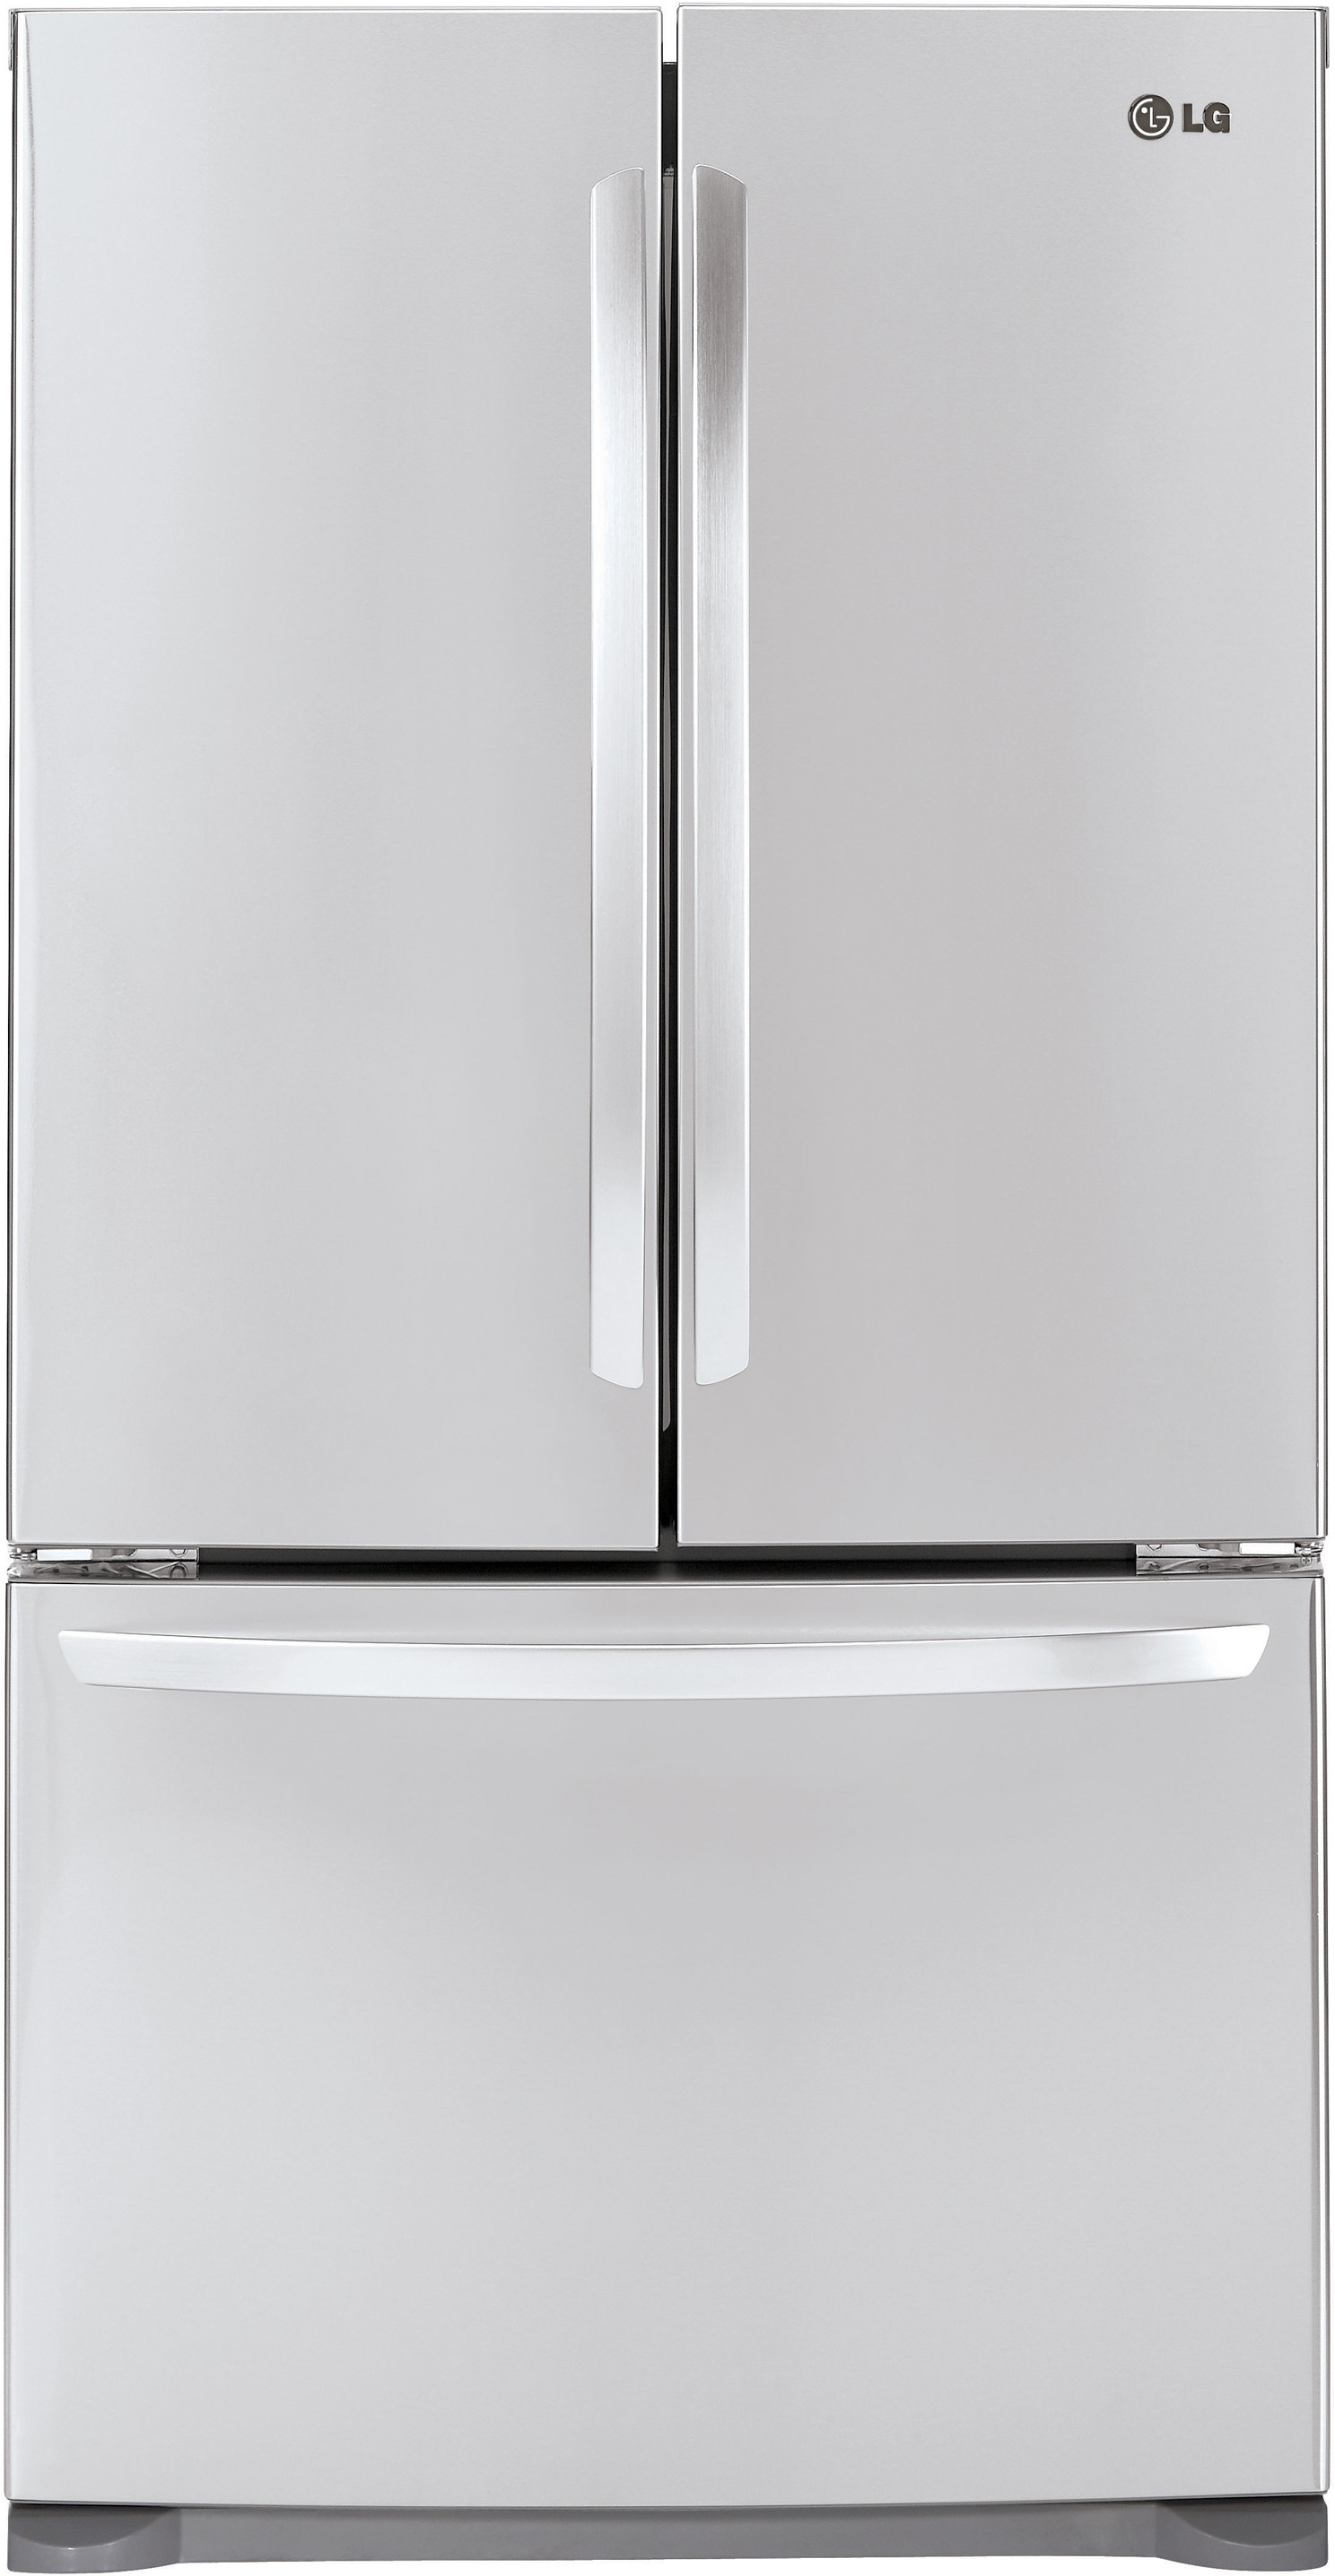 resistant doors ft french with appliances shop maker com tif original door fingerprint cu whirlpool web lg ice at stainless lowes refrigerators pl refrigerator